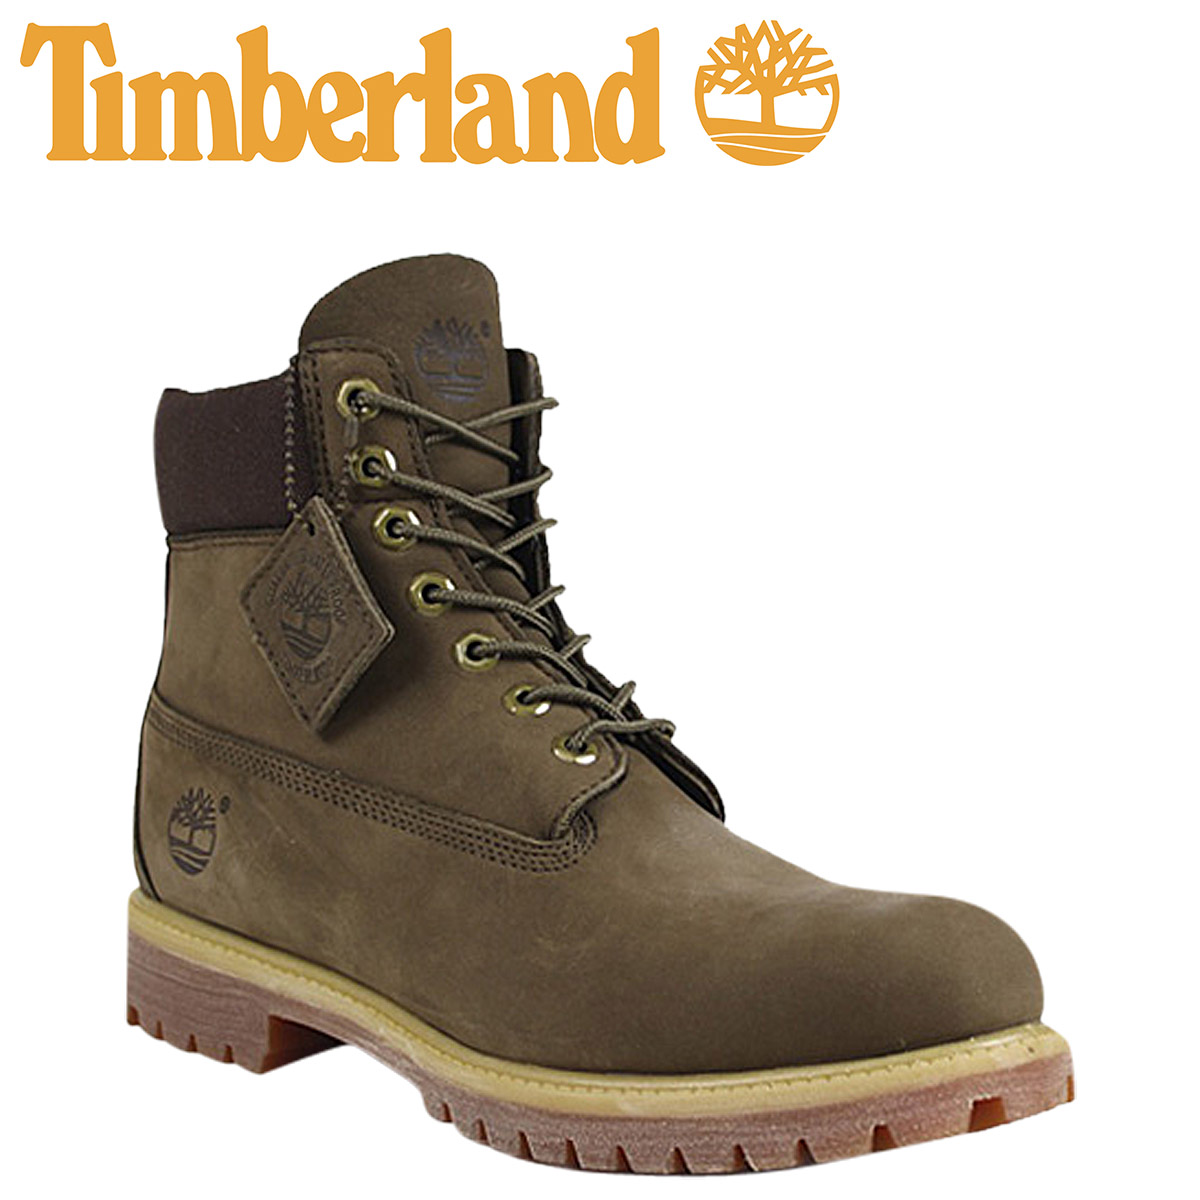 b26b89b961f6  SOLD OUT  Timberland Timberland Heritage Classic 6-inch premium waterproof  boot olive 6131R 6inch Heritage Classic Premium Waterproof Boot nubuck  OLIVE ...